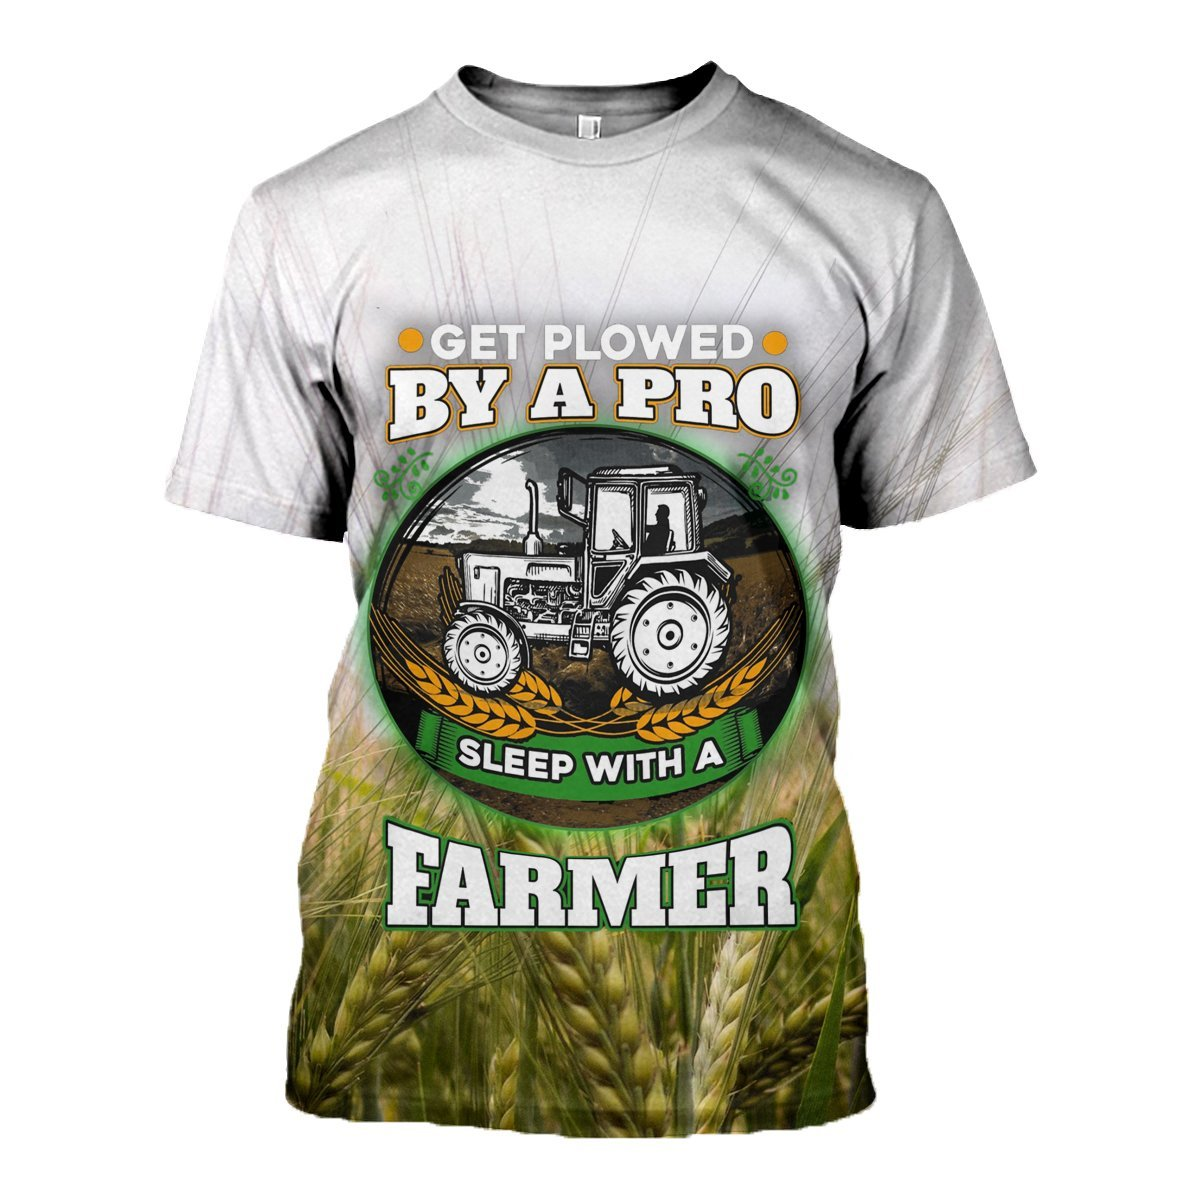 3D printed Farmer Tops